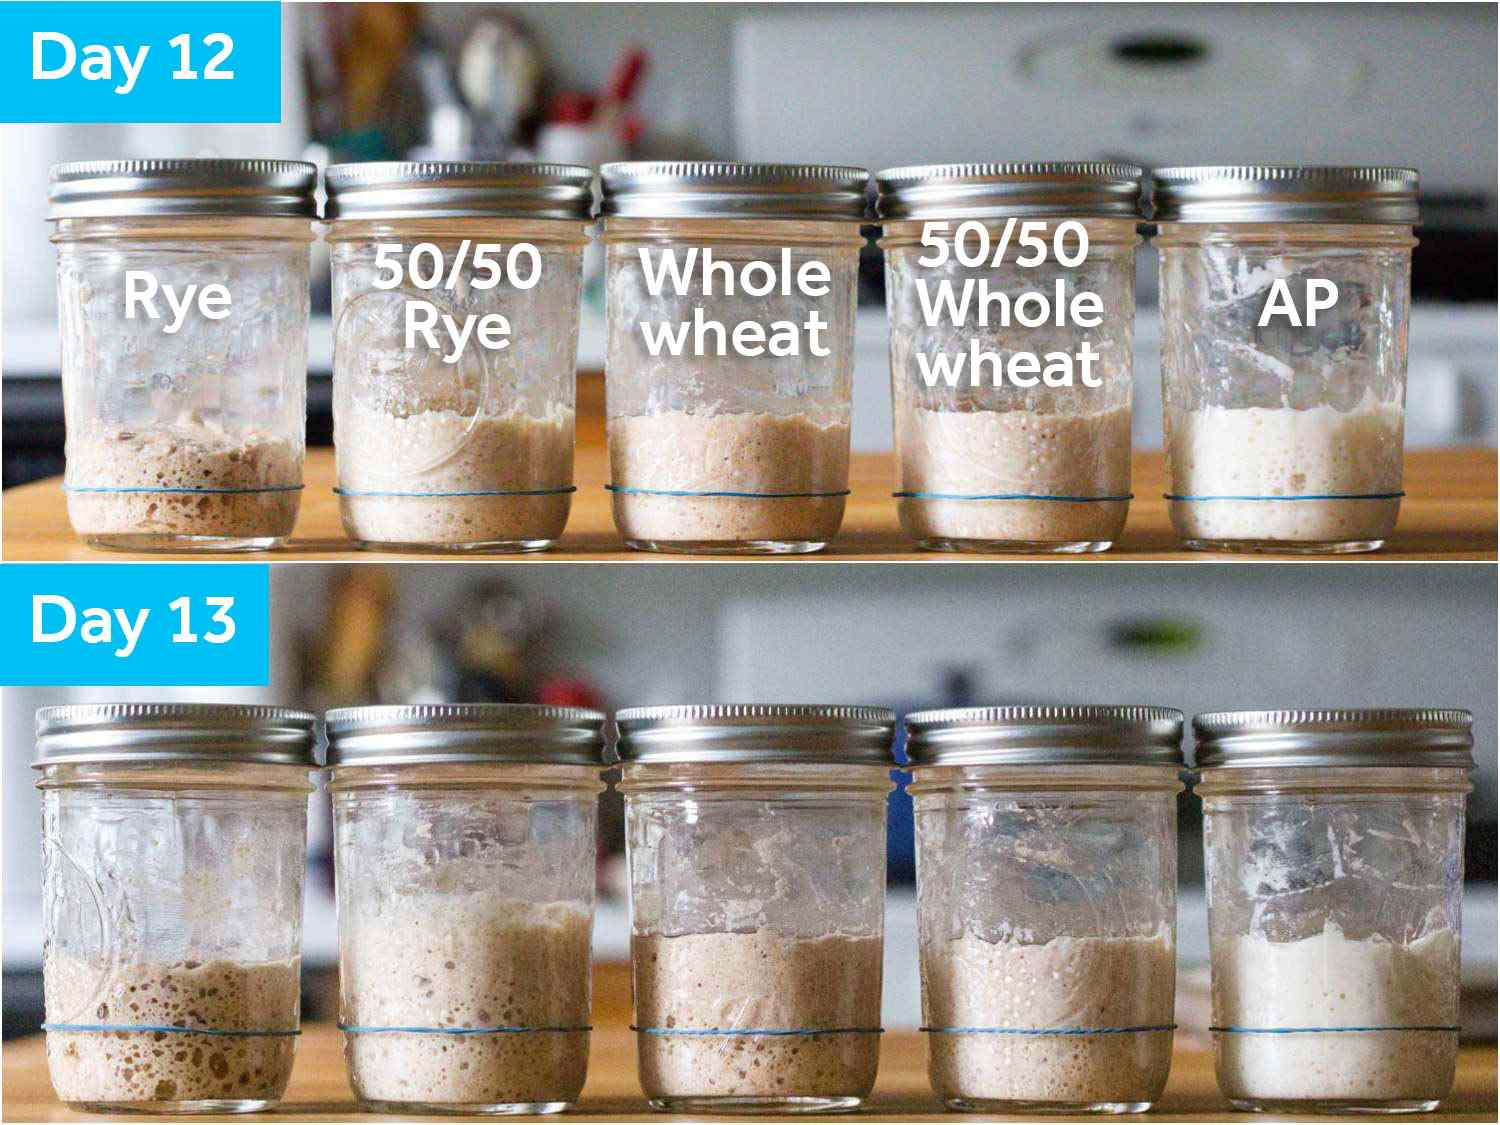 Comparative shots of the sourdough starters on days 12 and 13